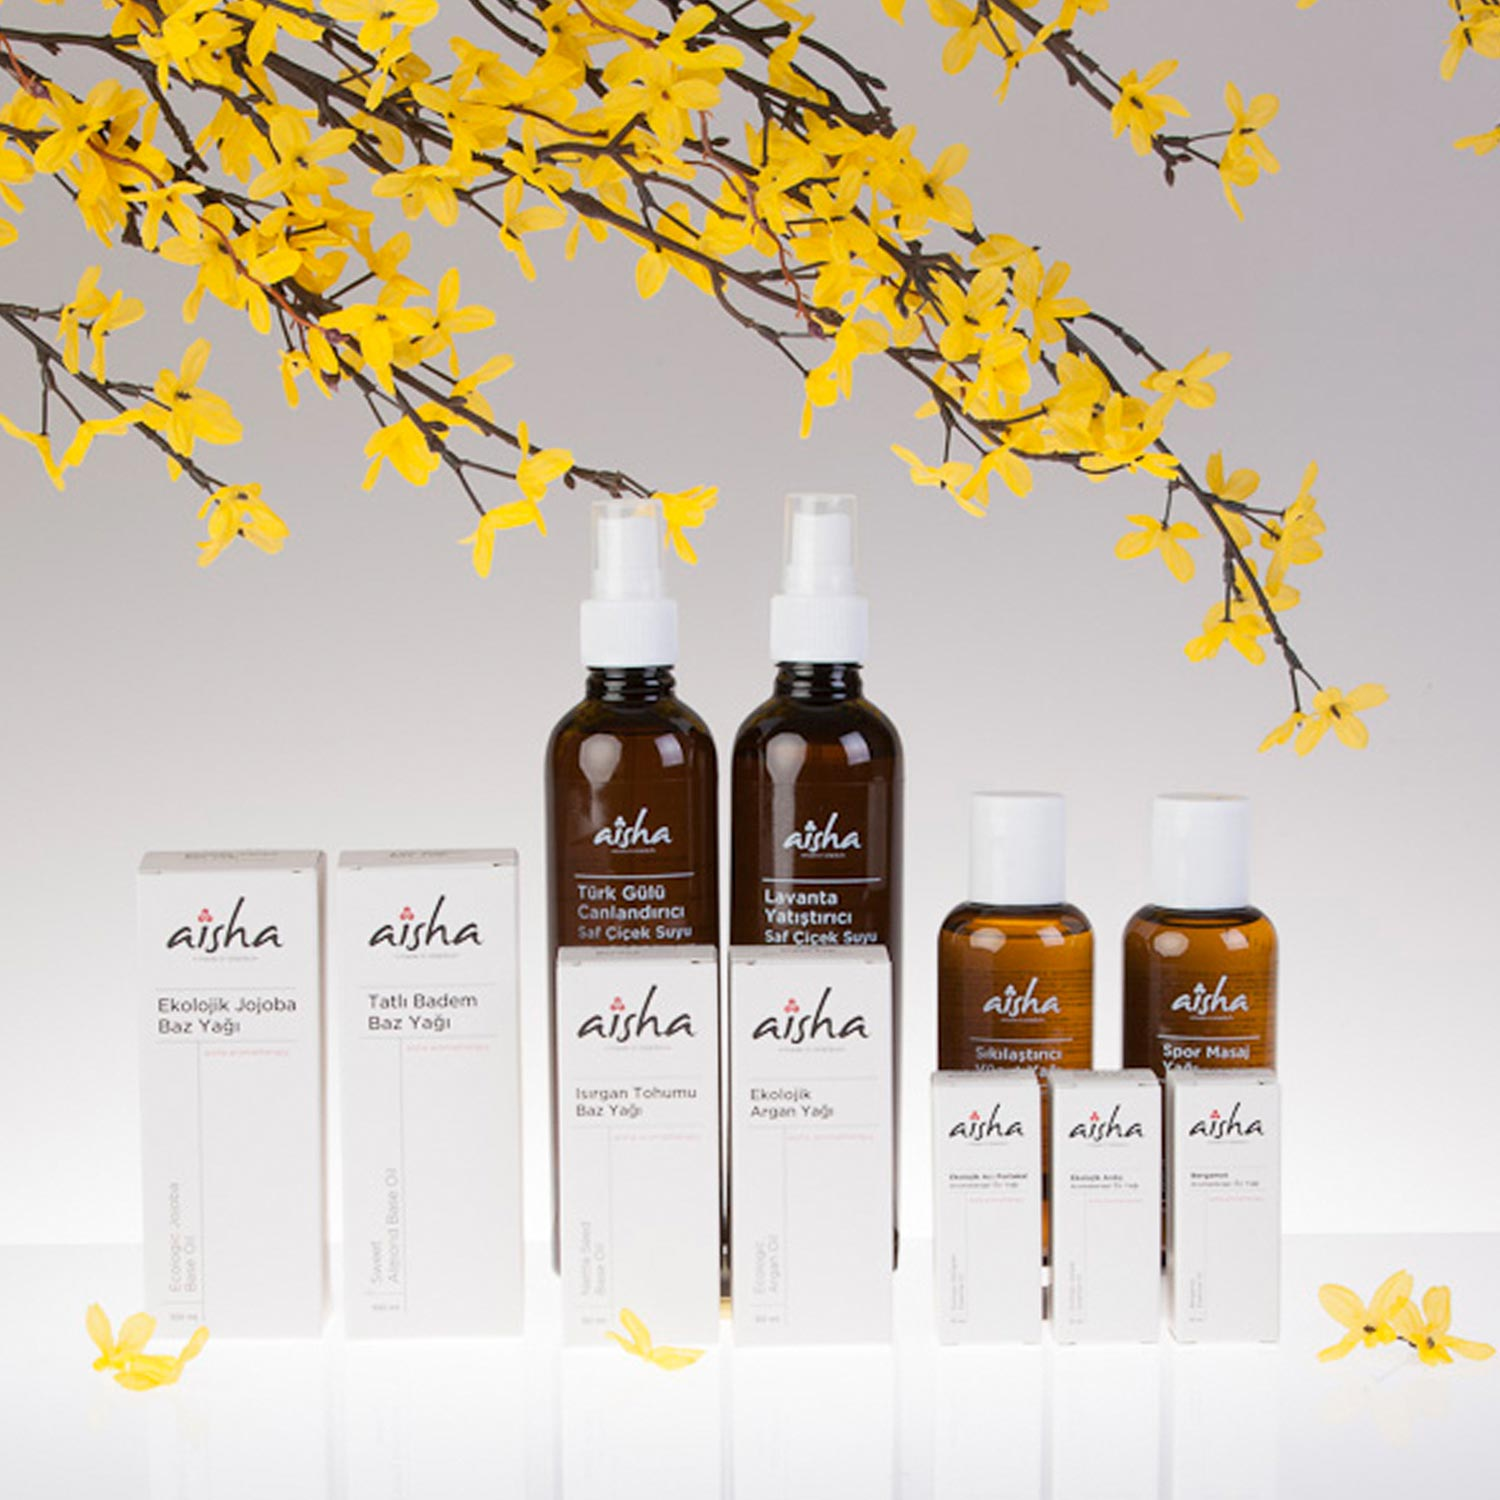 Miscellaneous Aisha aromatherapy Packaging 02